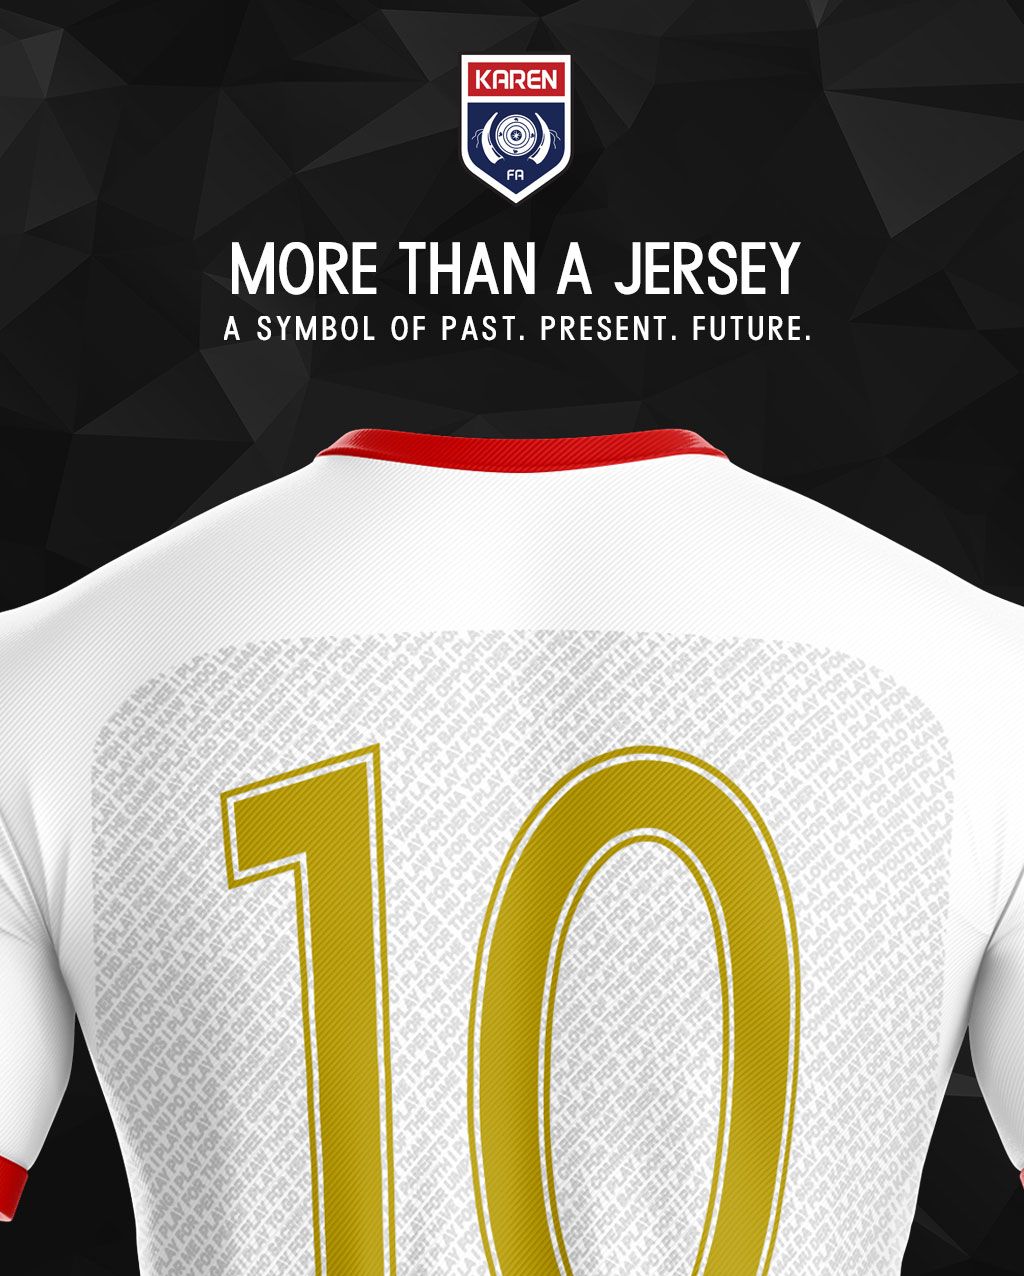 karen-national-team-full-image-header-mobile-national-team-jerseys-2a